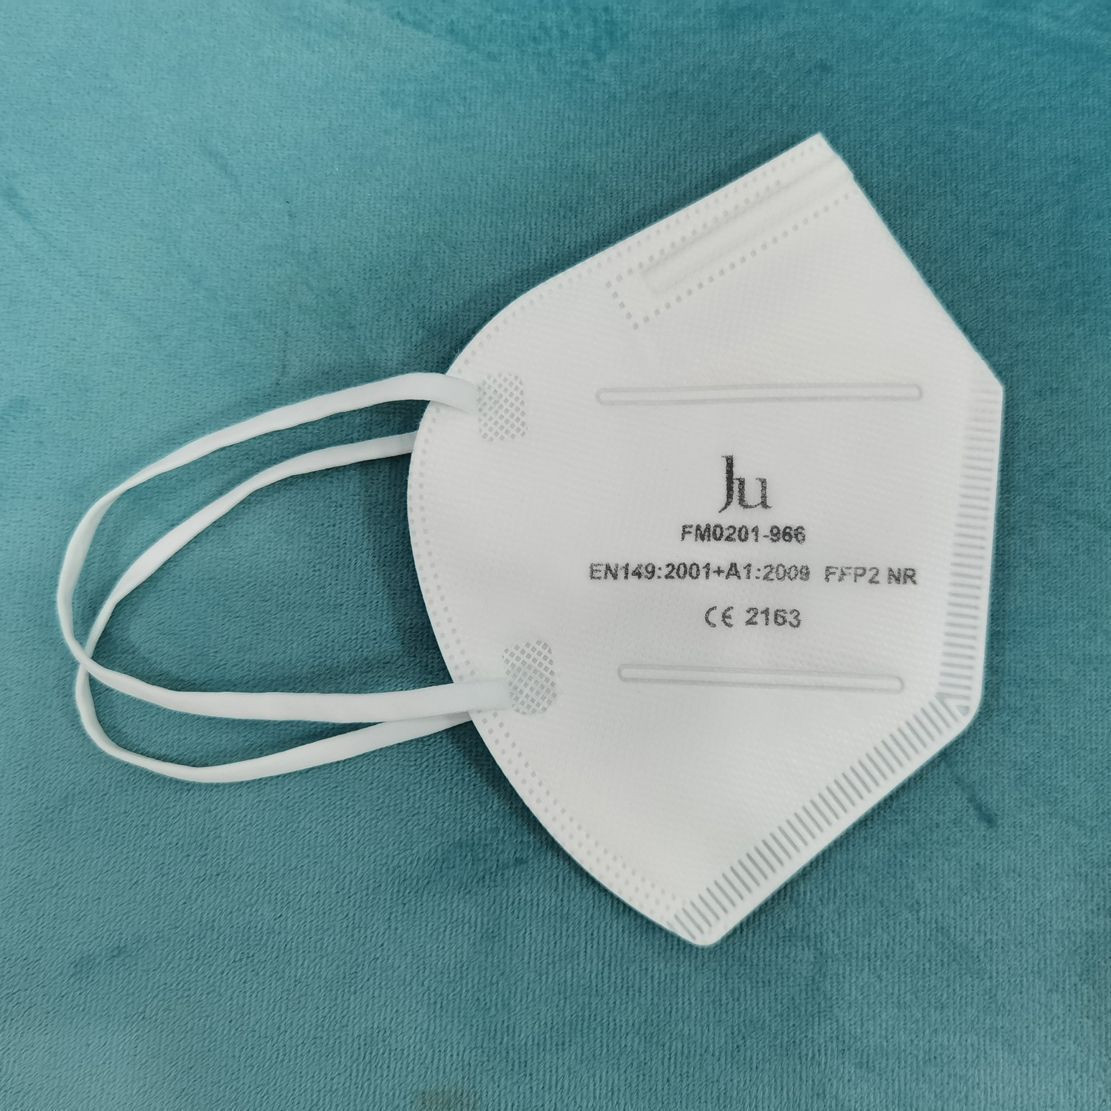 High Quality KN95 Face Mask with FFP2  printed on Mask with CE certificate